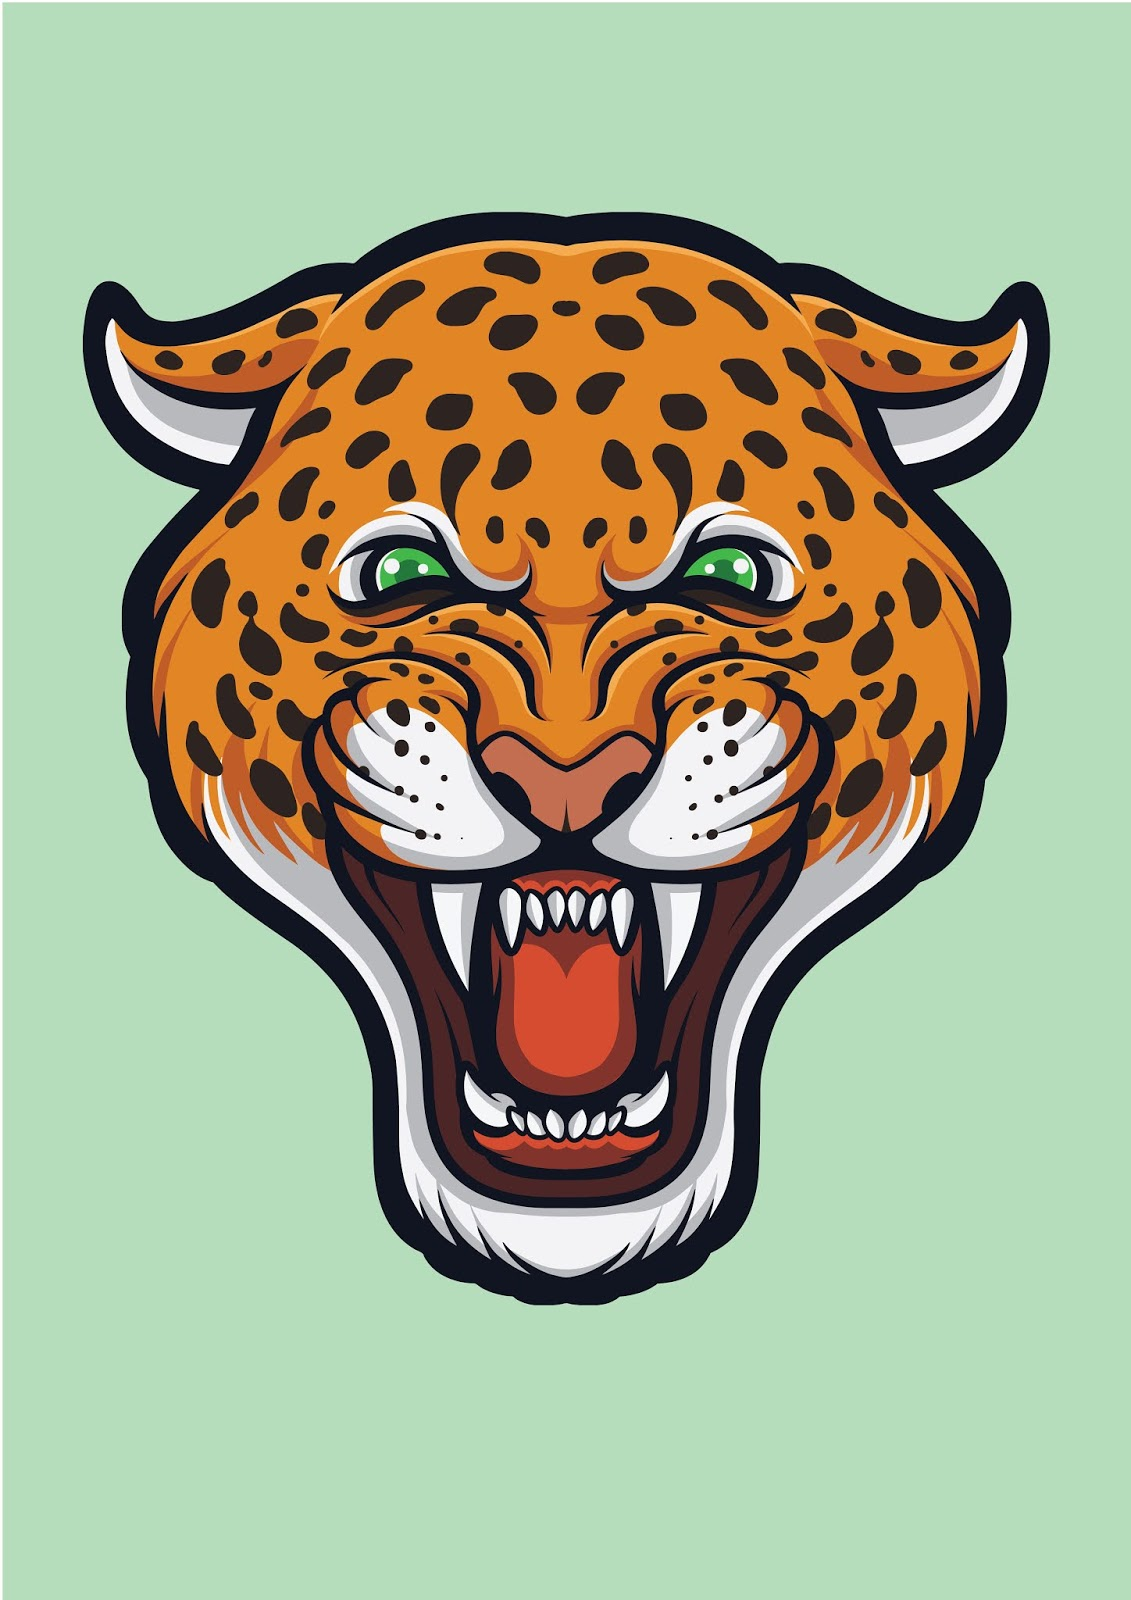 Angry Leopard Face Panthera Pardus Free Download Vector CDR, AI, EPS and PNG Formats